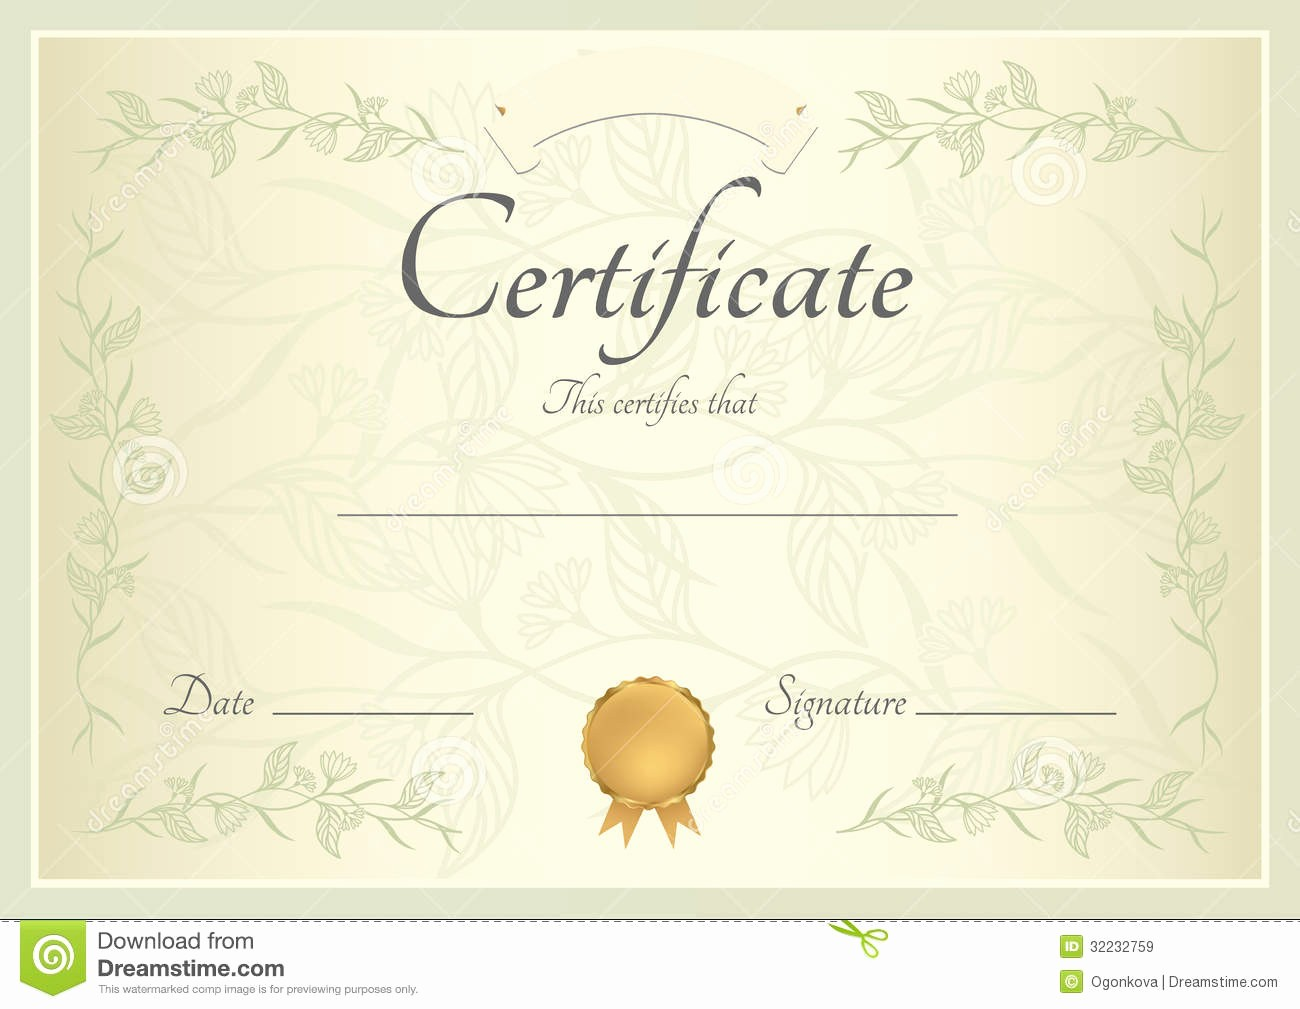 Certificate Background Design Free Download Inspirational Certificate Diploma Background Template Stock Vector